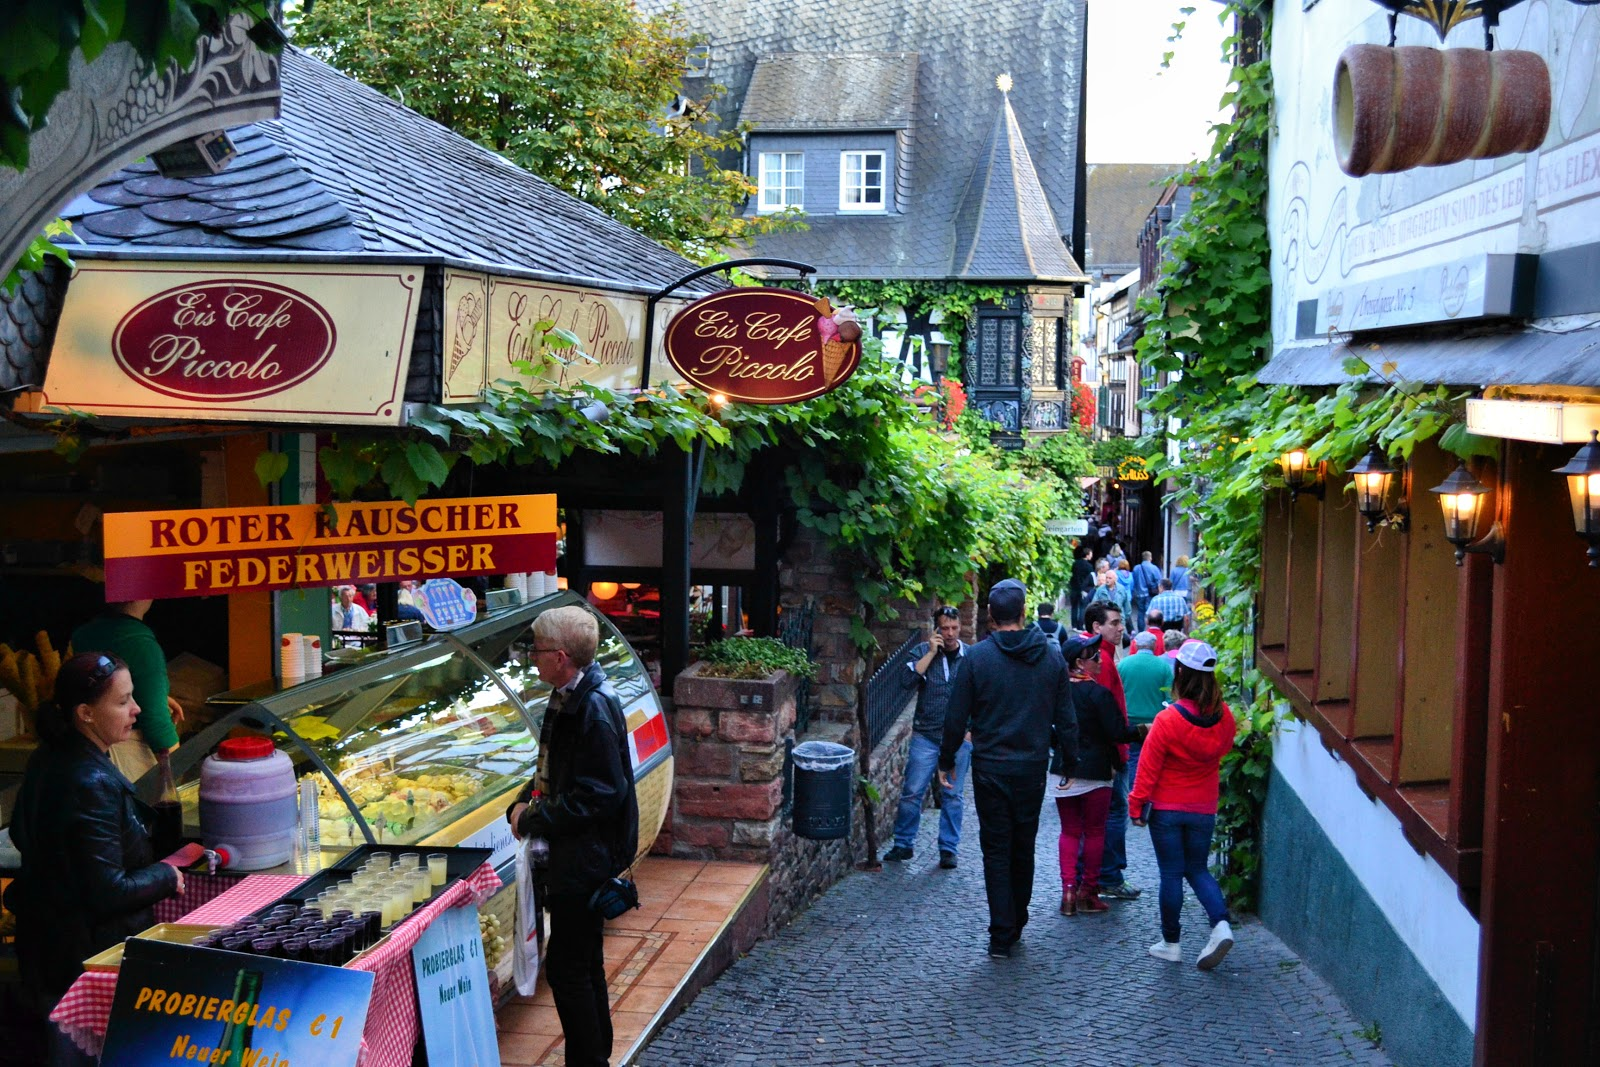 Willkommen to Rüdesheim, one of many storybook villages along the legendary Rhine River in Germany. All photography, unless noted, is the property of EuroTravelogue™. Unauthorized use is prohibited.